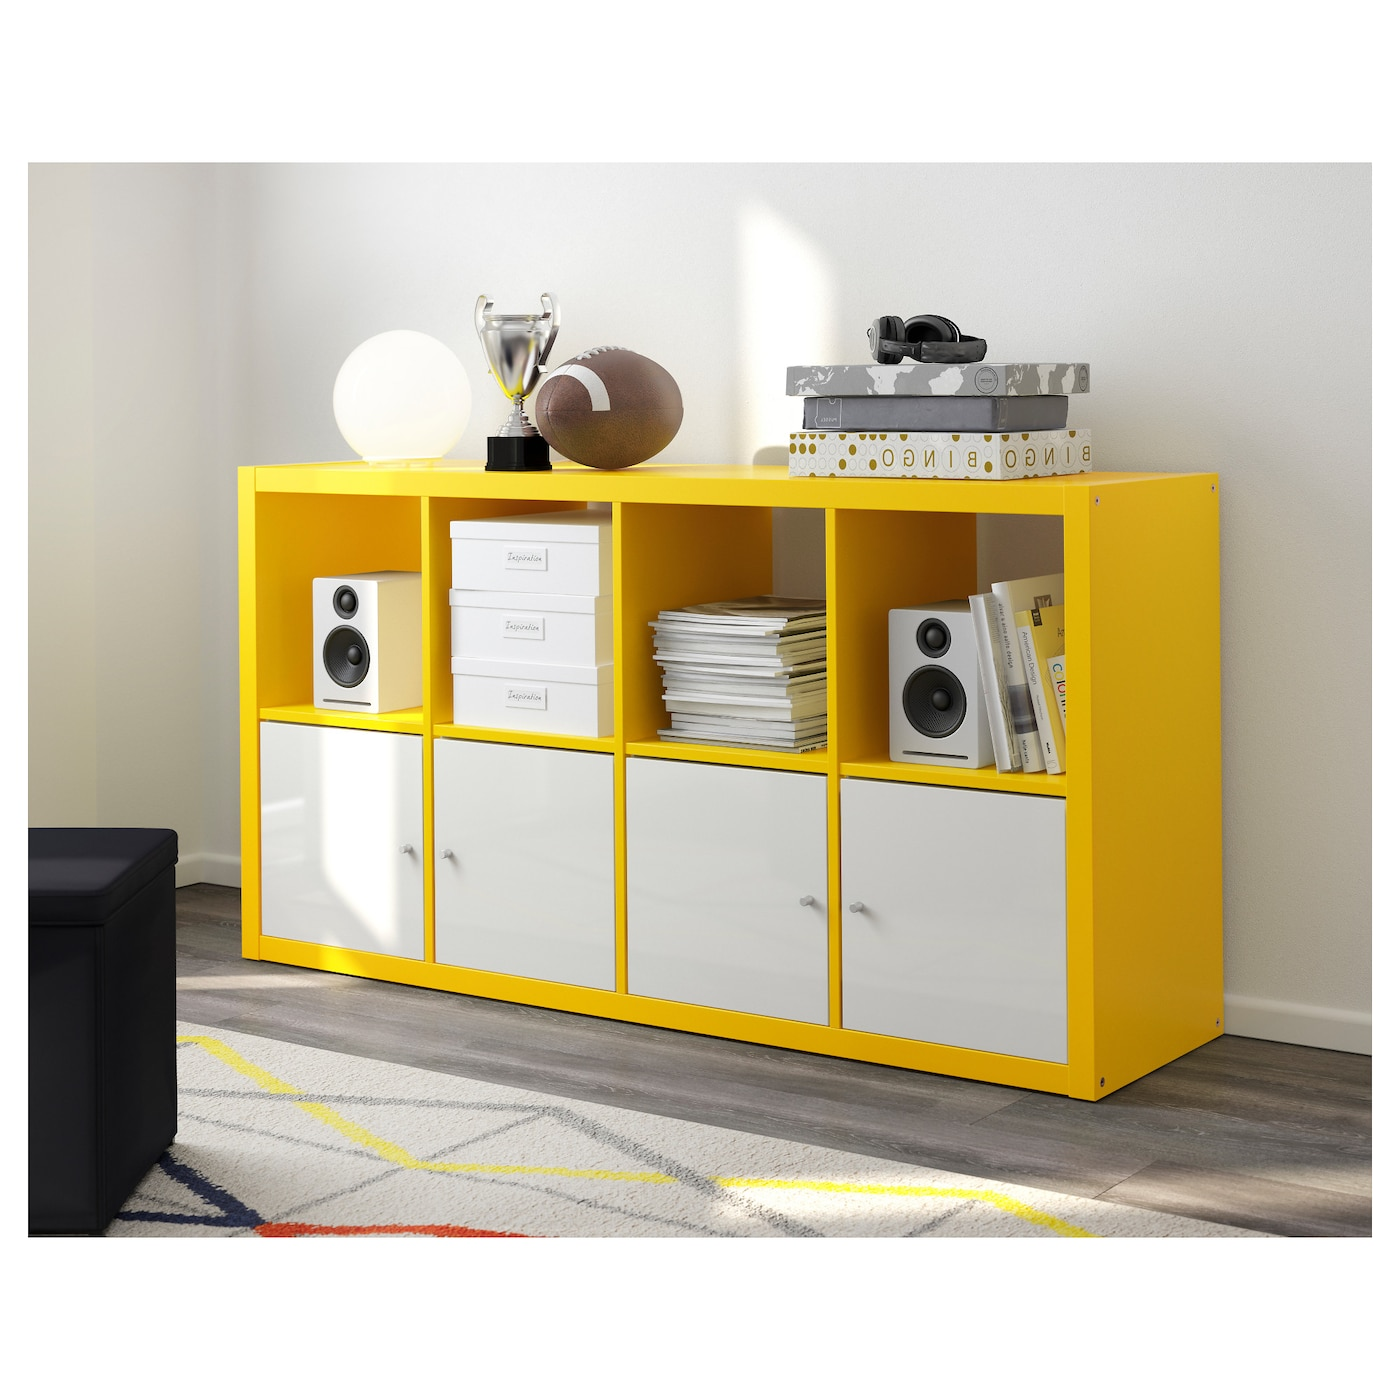 kallax shelving unit yellow 77x147 cm ikea. Black Bedroom Furniture Sets. Home Design Ideas